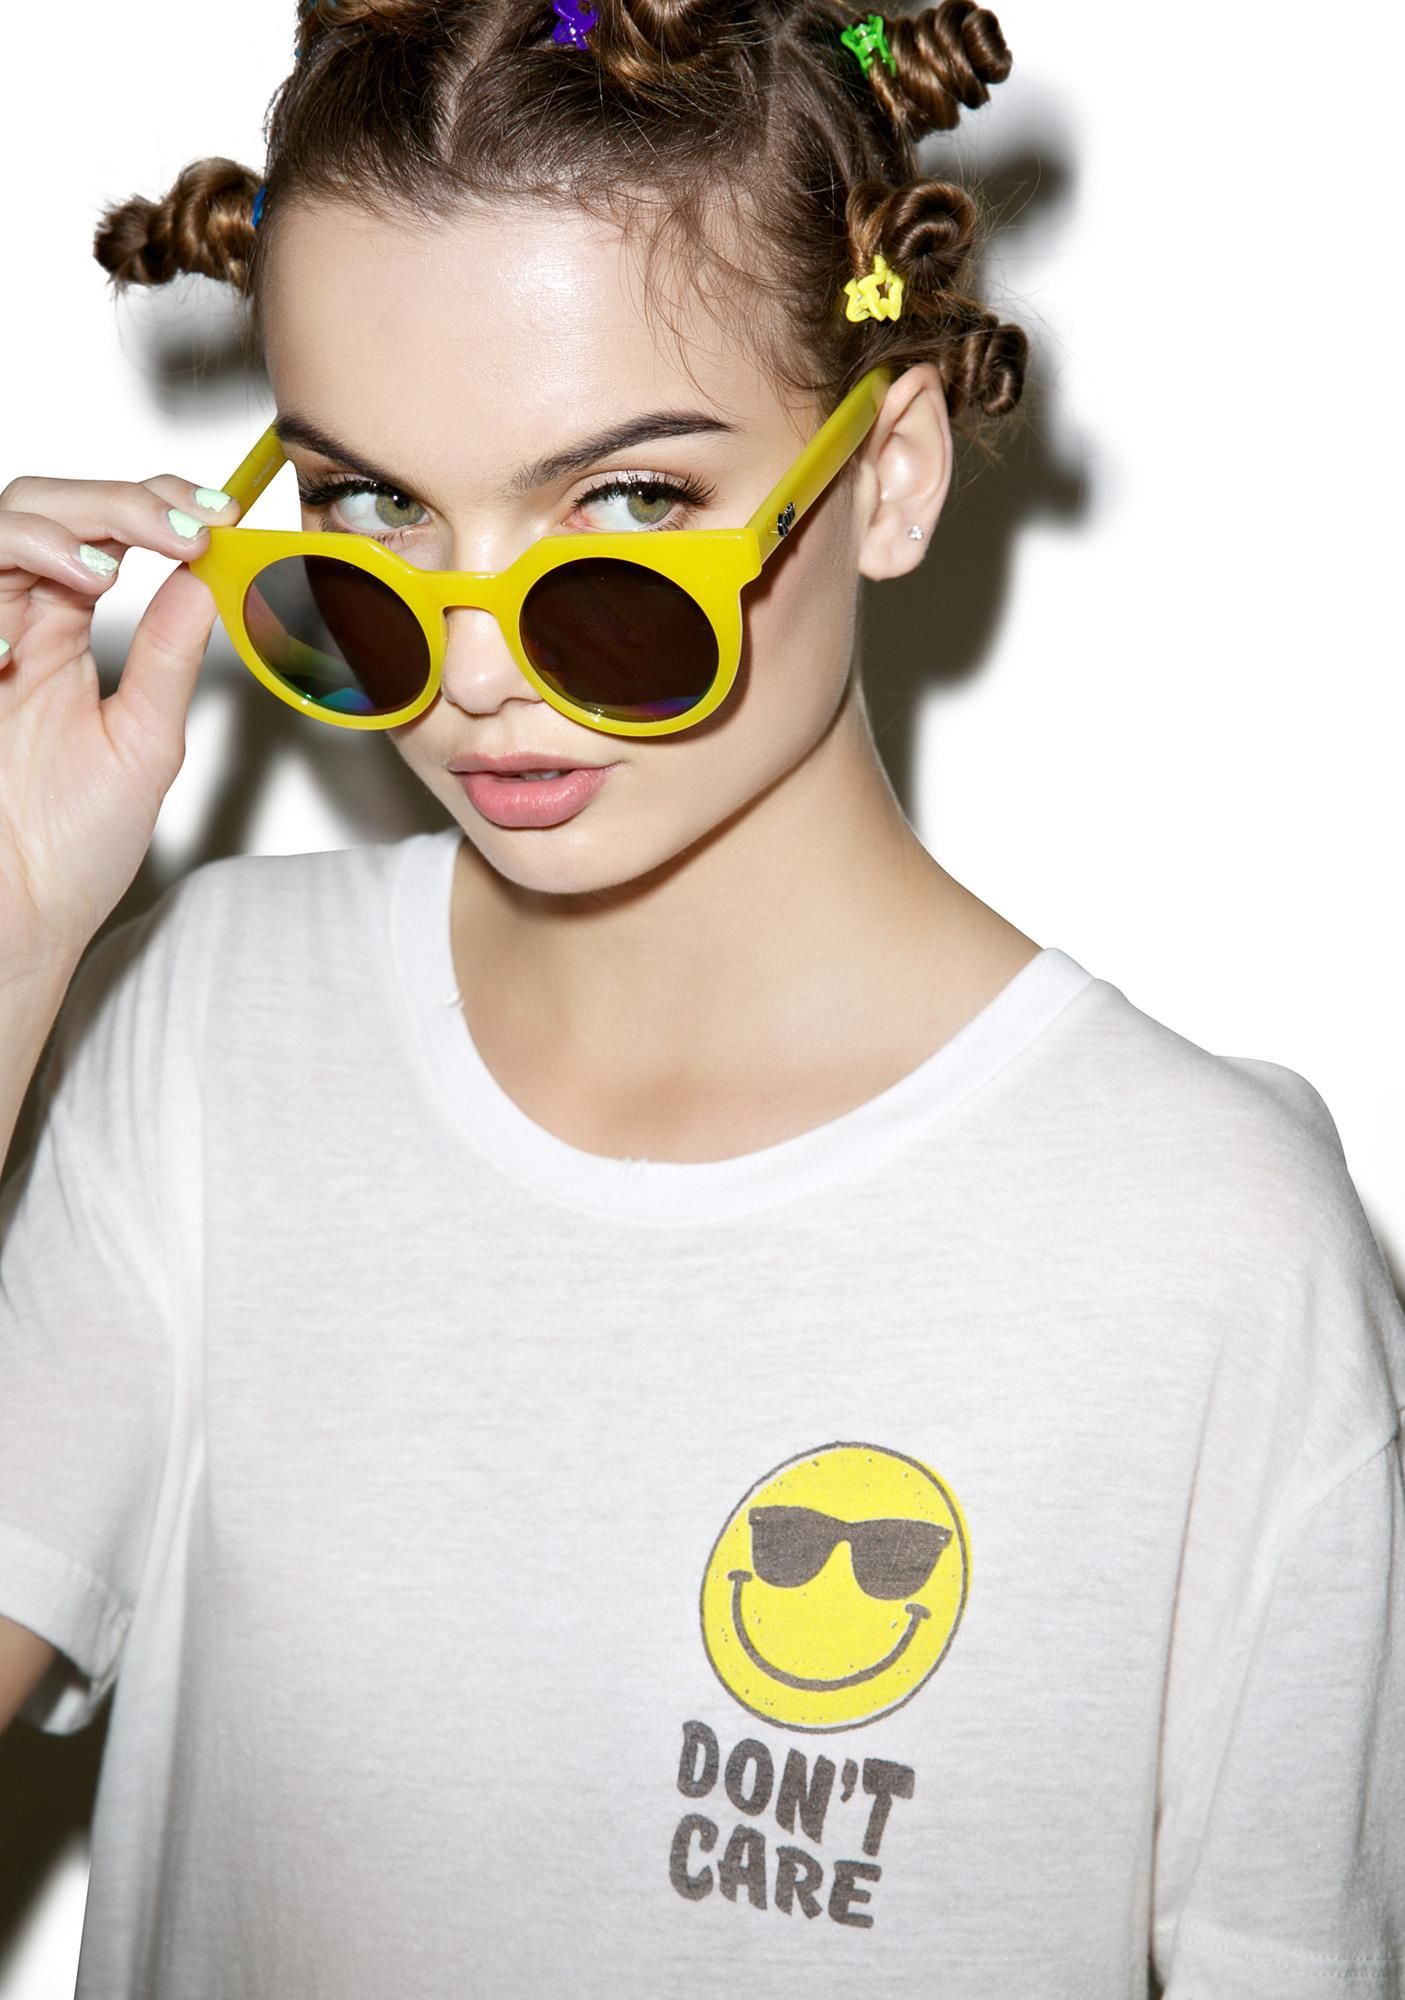 Don't Care Smiley Tee